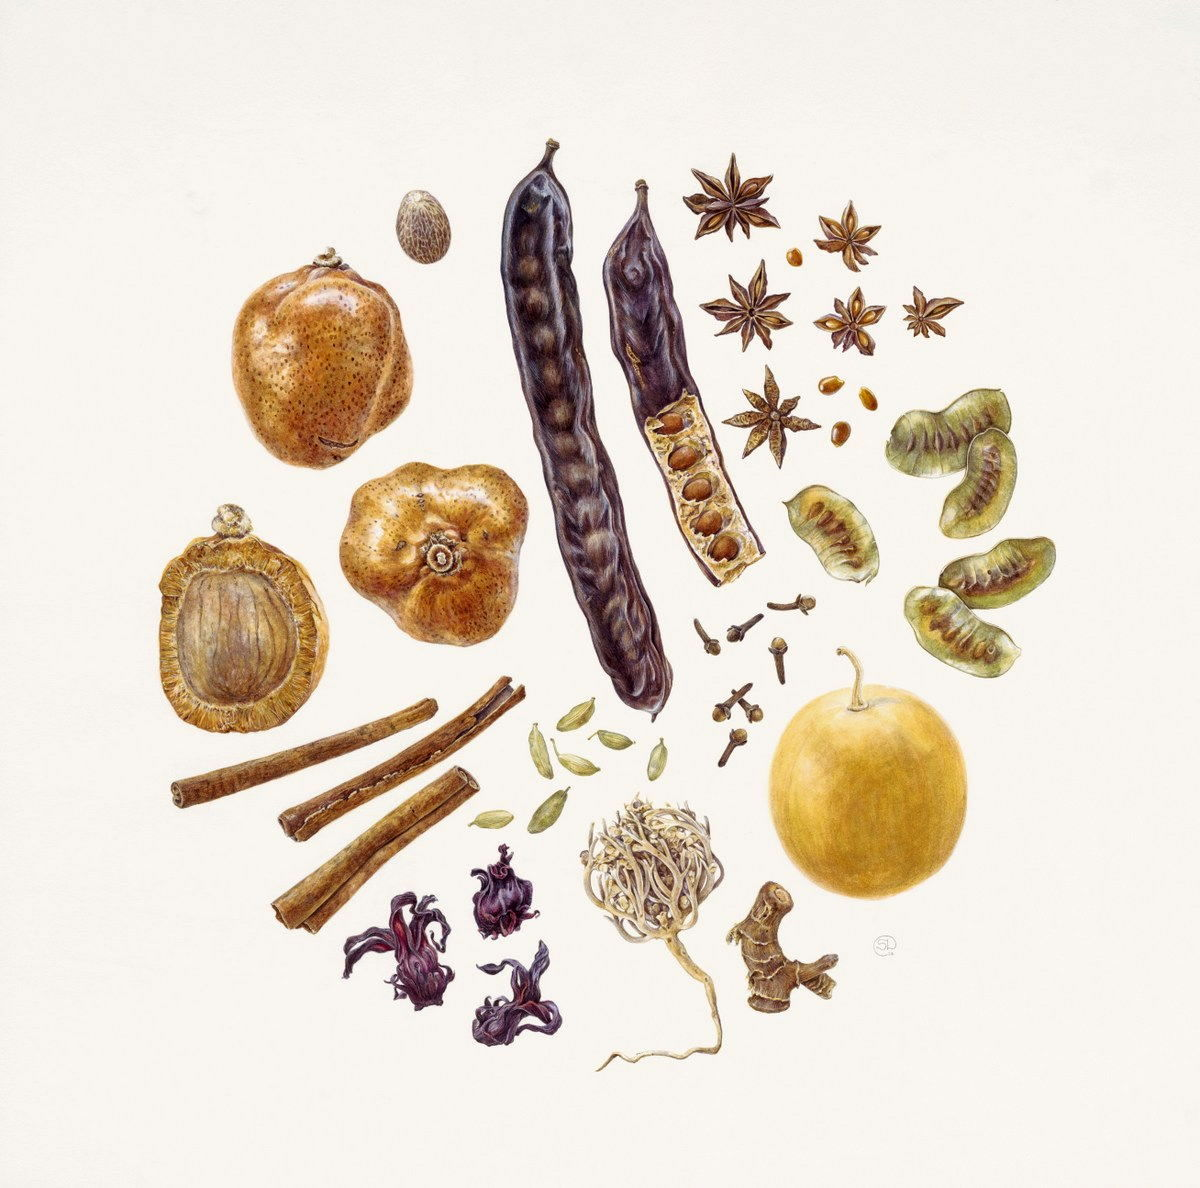 Watercolour of medicinal spices from arab market by Shevaun Doherty